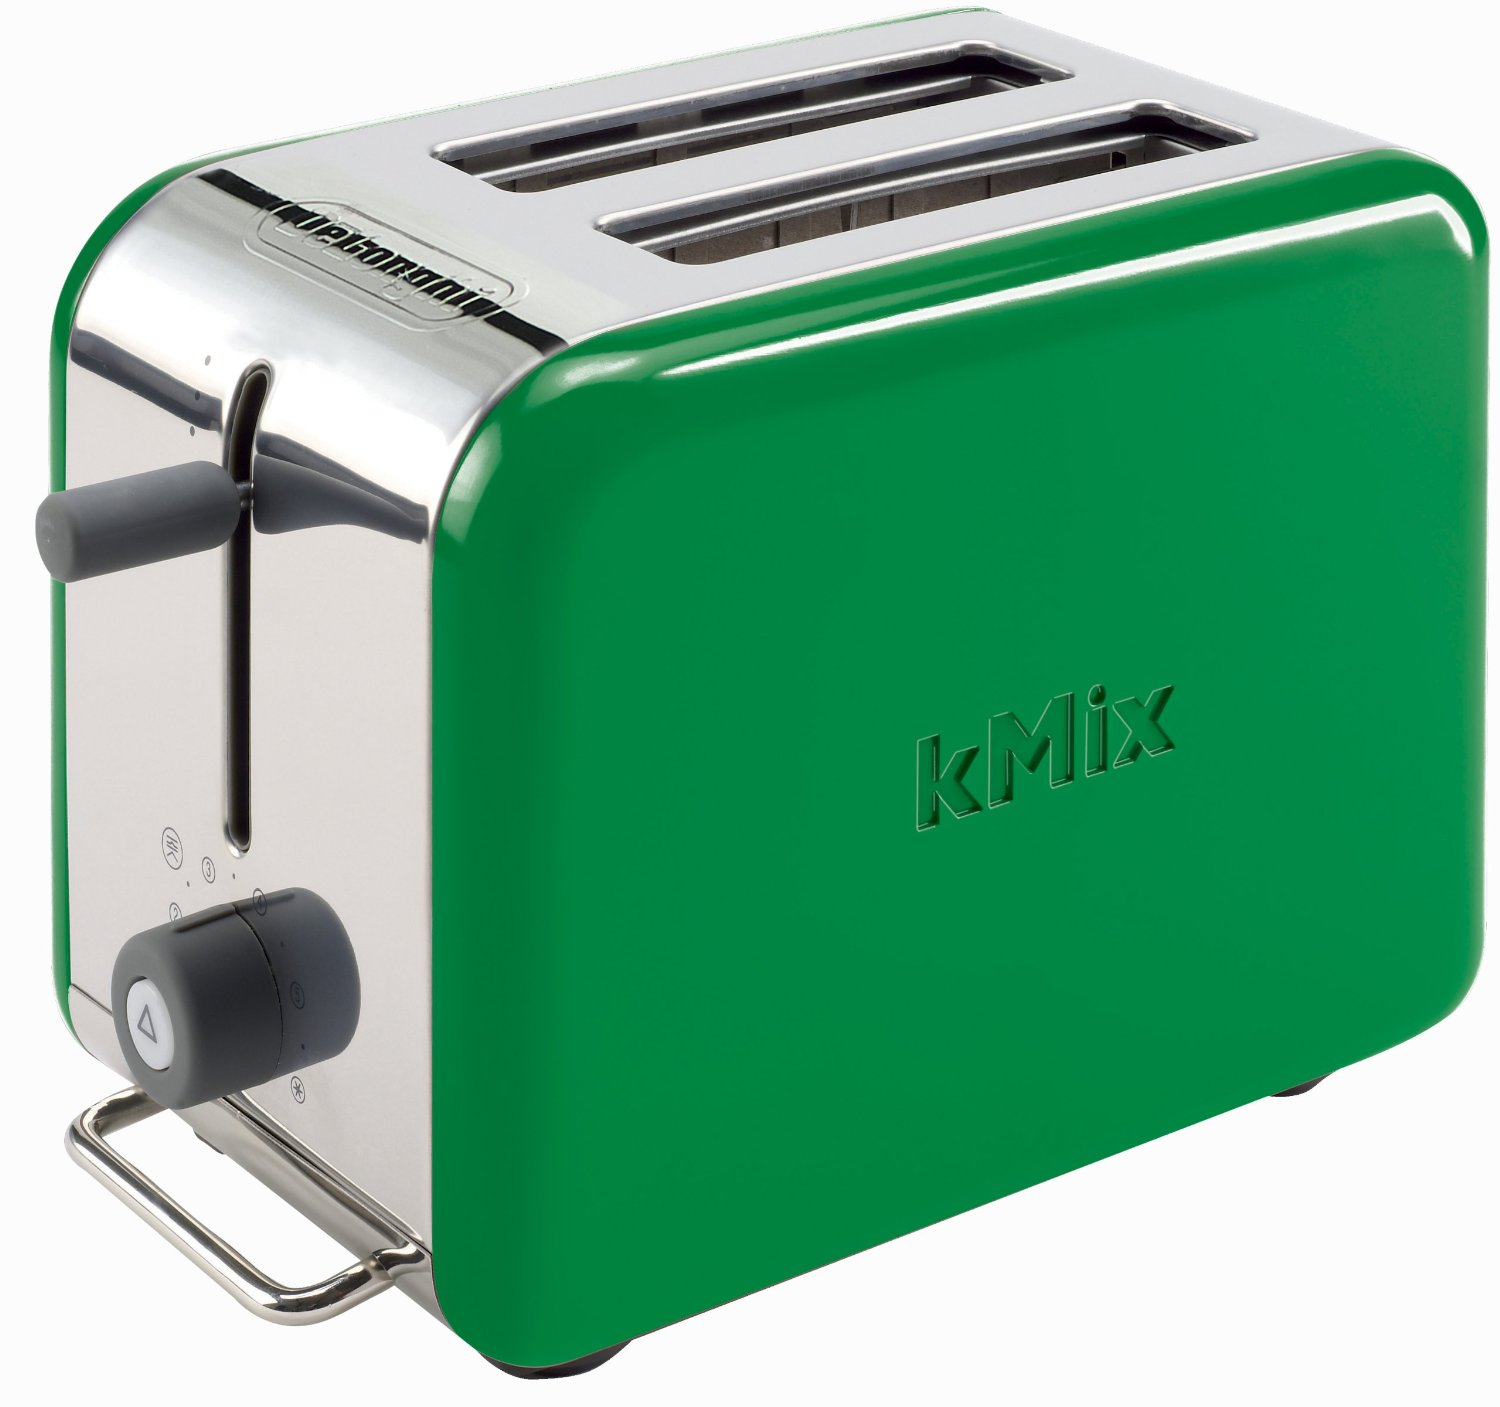 Delonghi Kmix Review Best 2 Slice Toaster With Bun Warmer